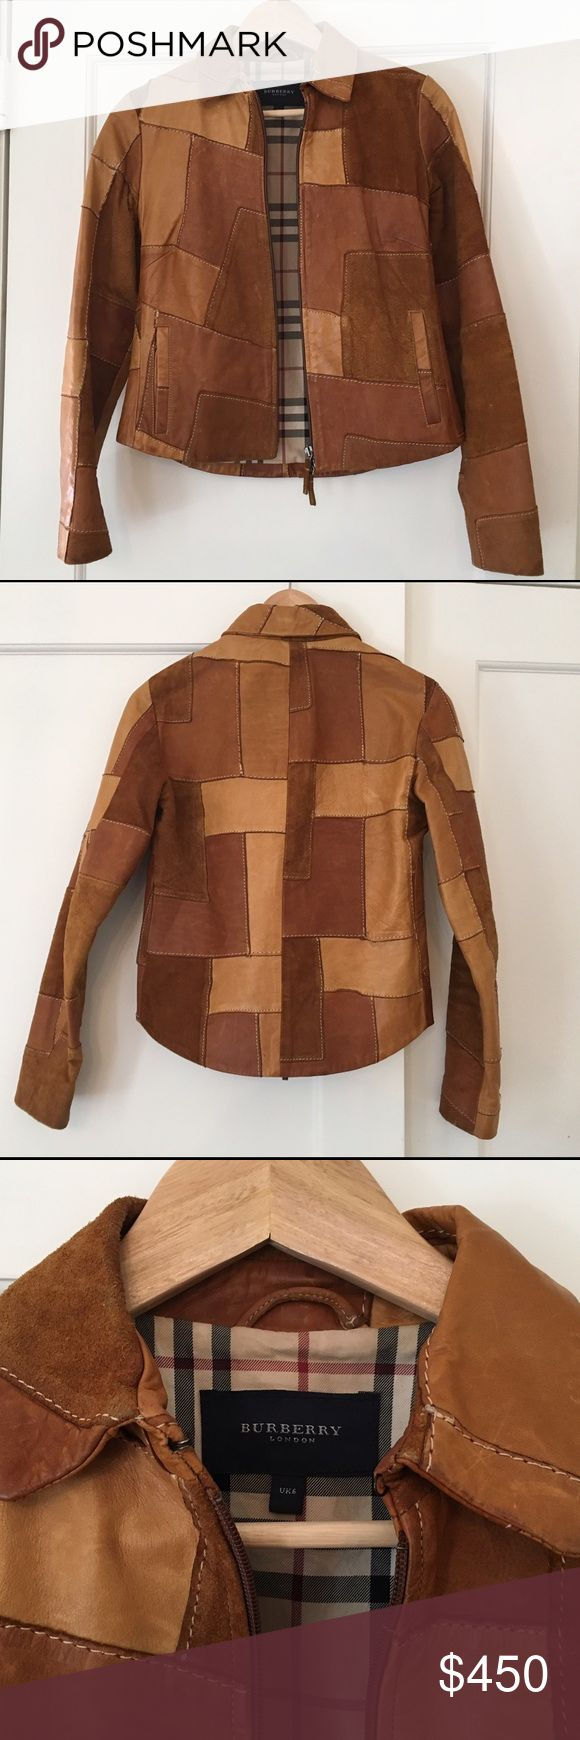 Burberry Suede and Leather Patchwork Jacket This gorgeous Burberry jacket is so hard to part with, but it's better off with someone who will get more use out of it! Fully lined with distinctive Burberry plaid, two pockets, zip closure at center. Amazing 70's style patchwork. Only worn a few times - slight wear on suede at armpits (pictured above) and very slight wear at bottom right corner by zipper (contact me and will gladly send picture). Size UK 6 - I am between a US 4-6 and it fits…